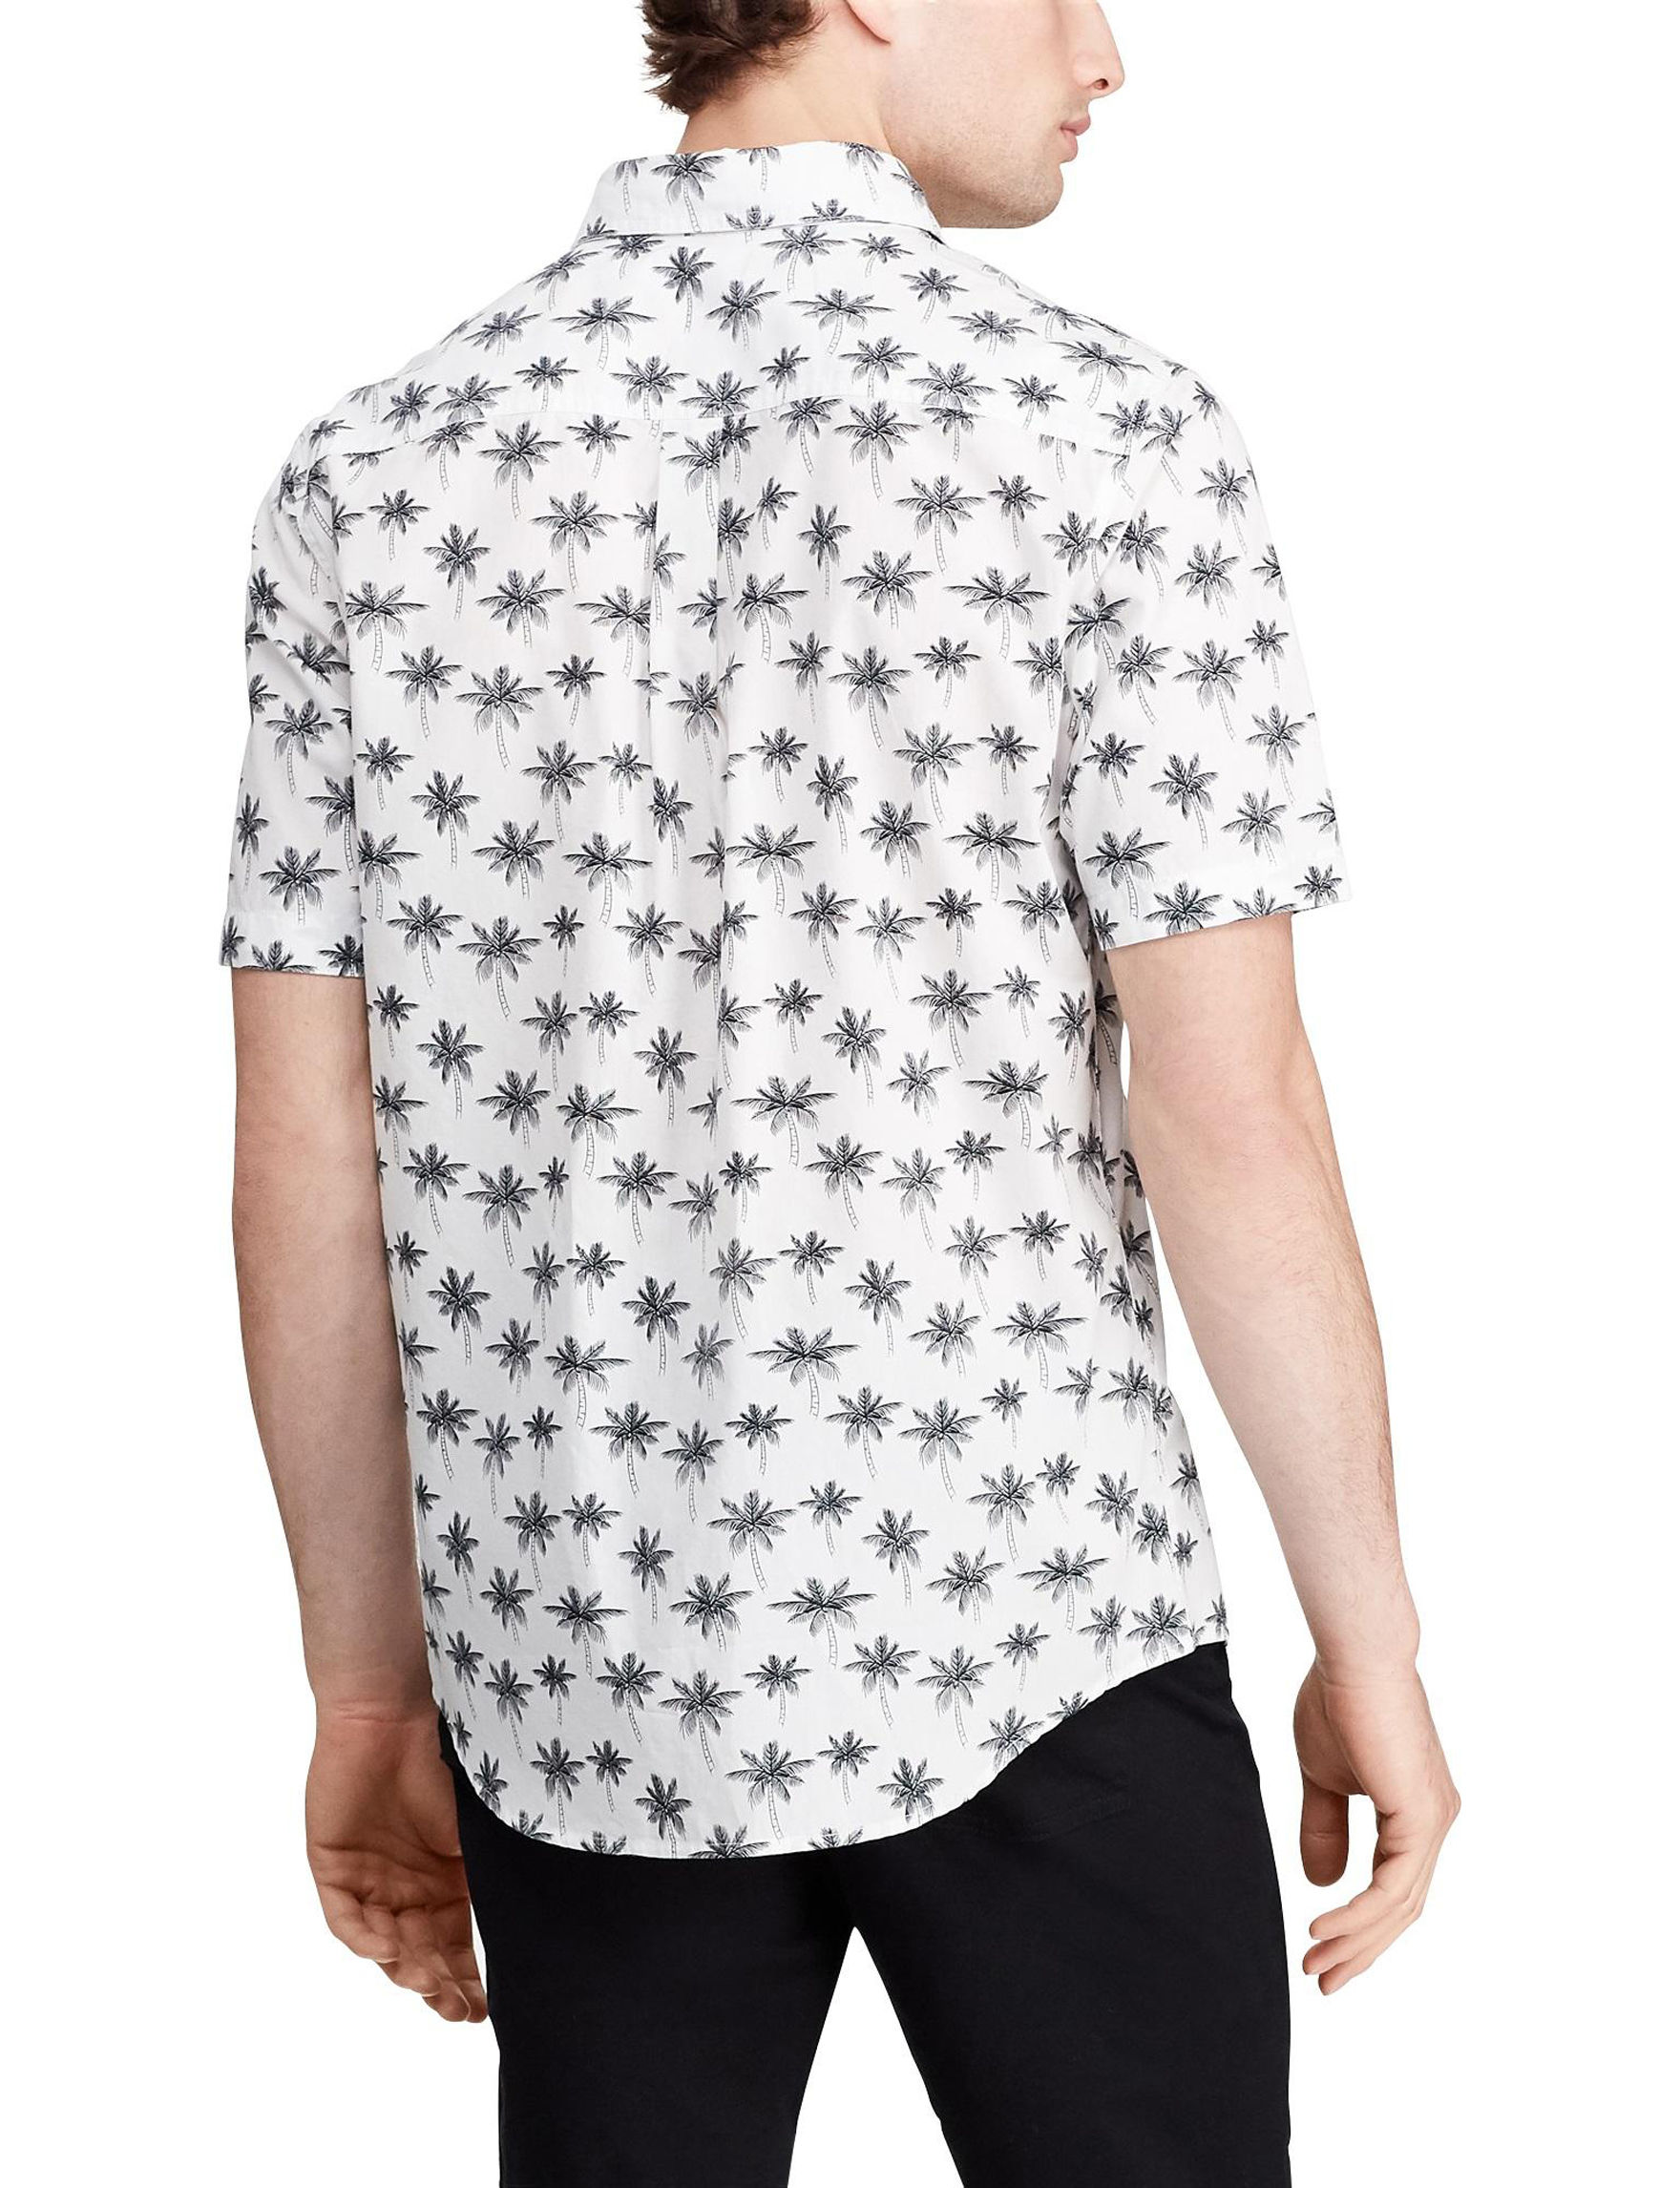 737bab02c Chaps Men's Palm Tree Woven Shirt | Stage Stores